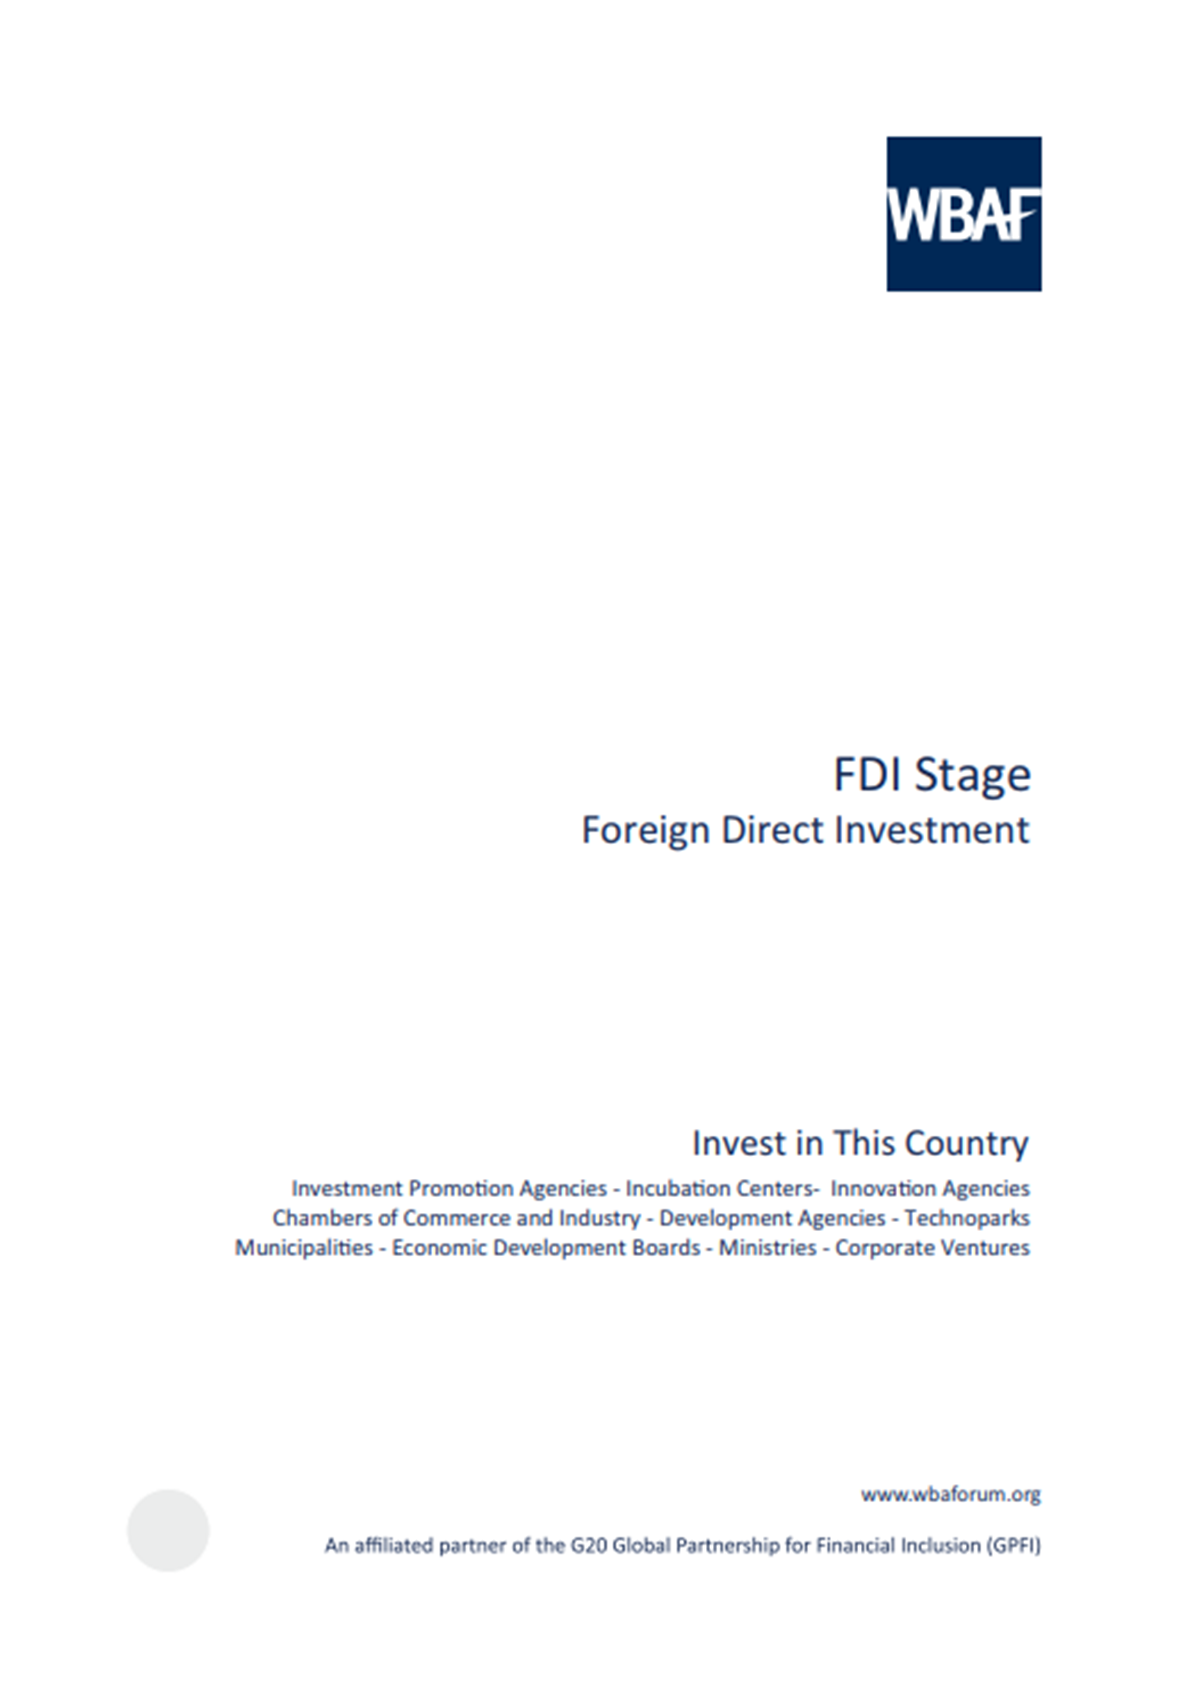 FDI Stage - Foreign Direct Investment